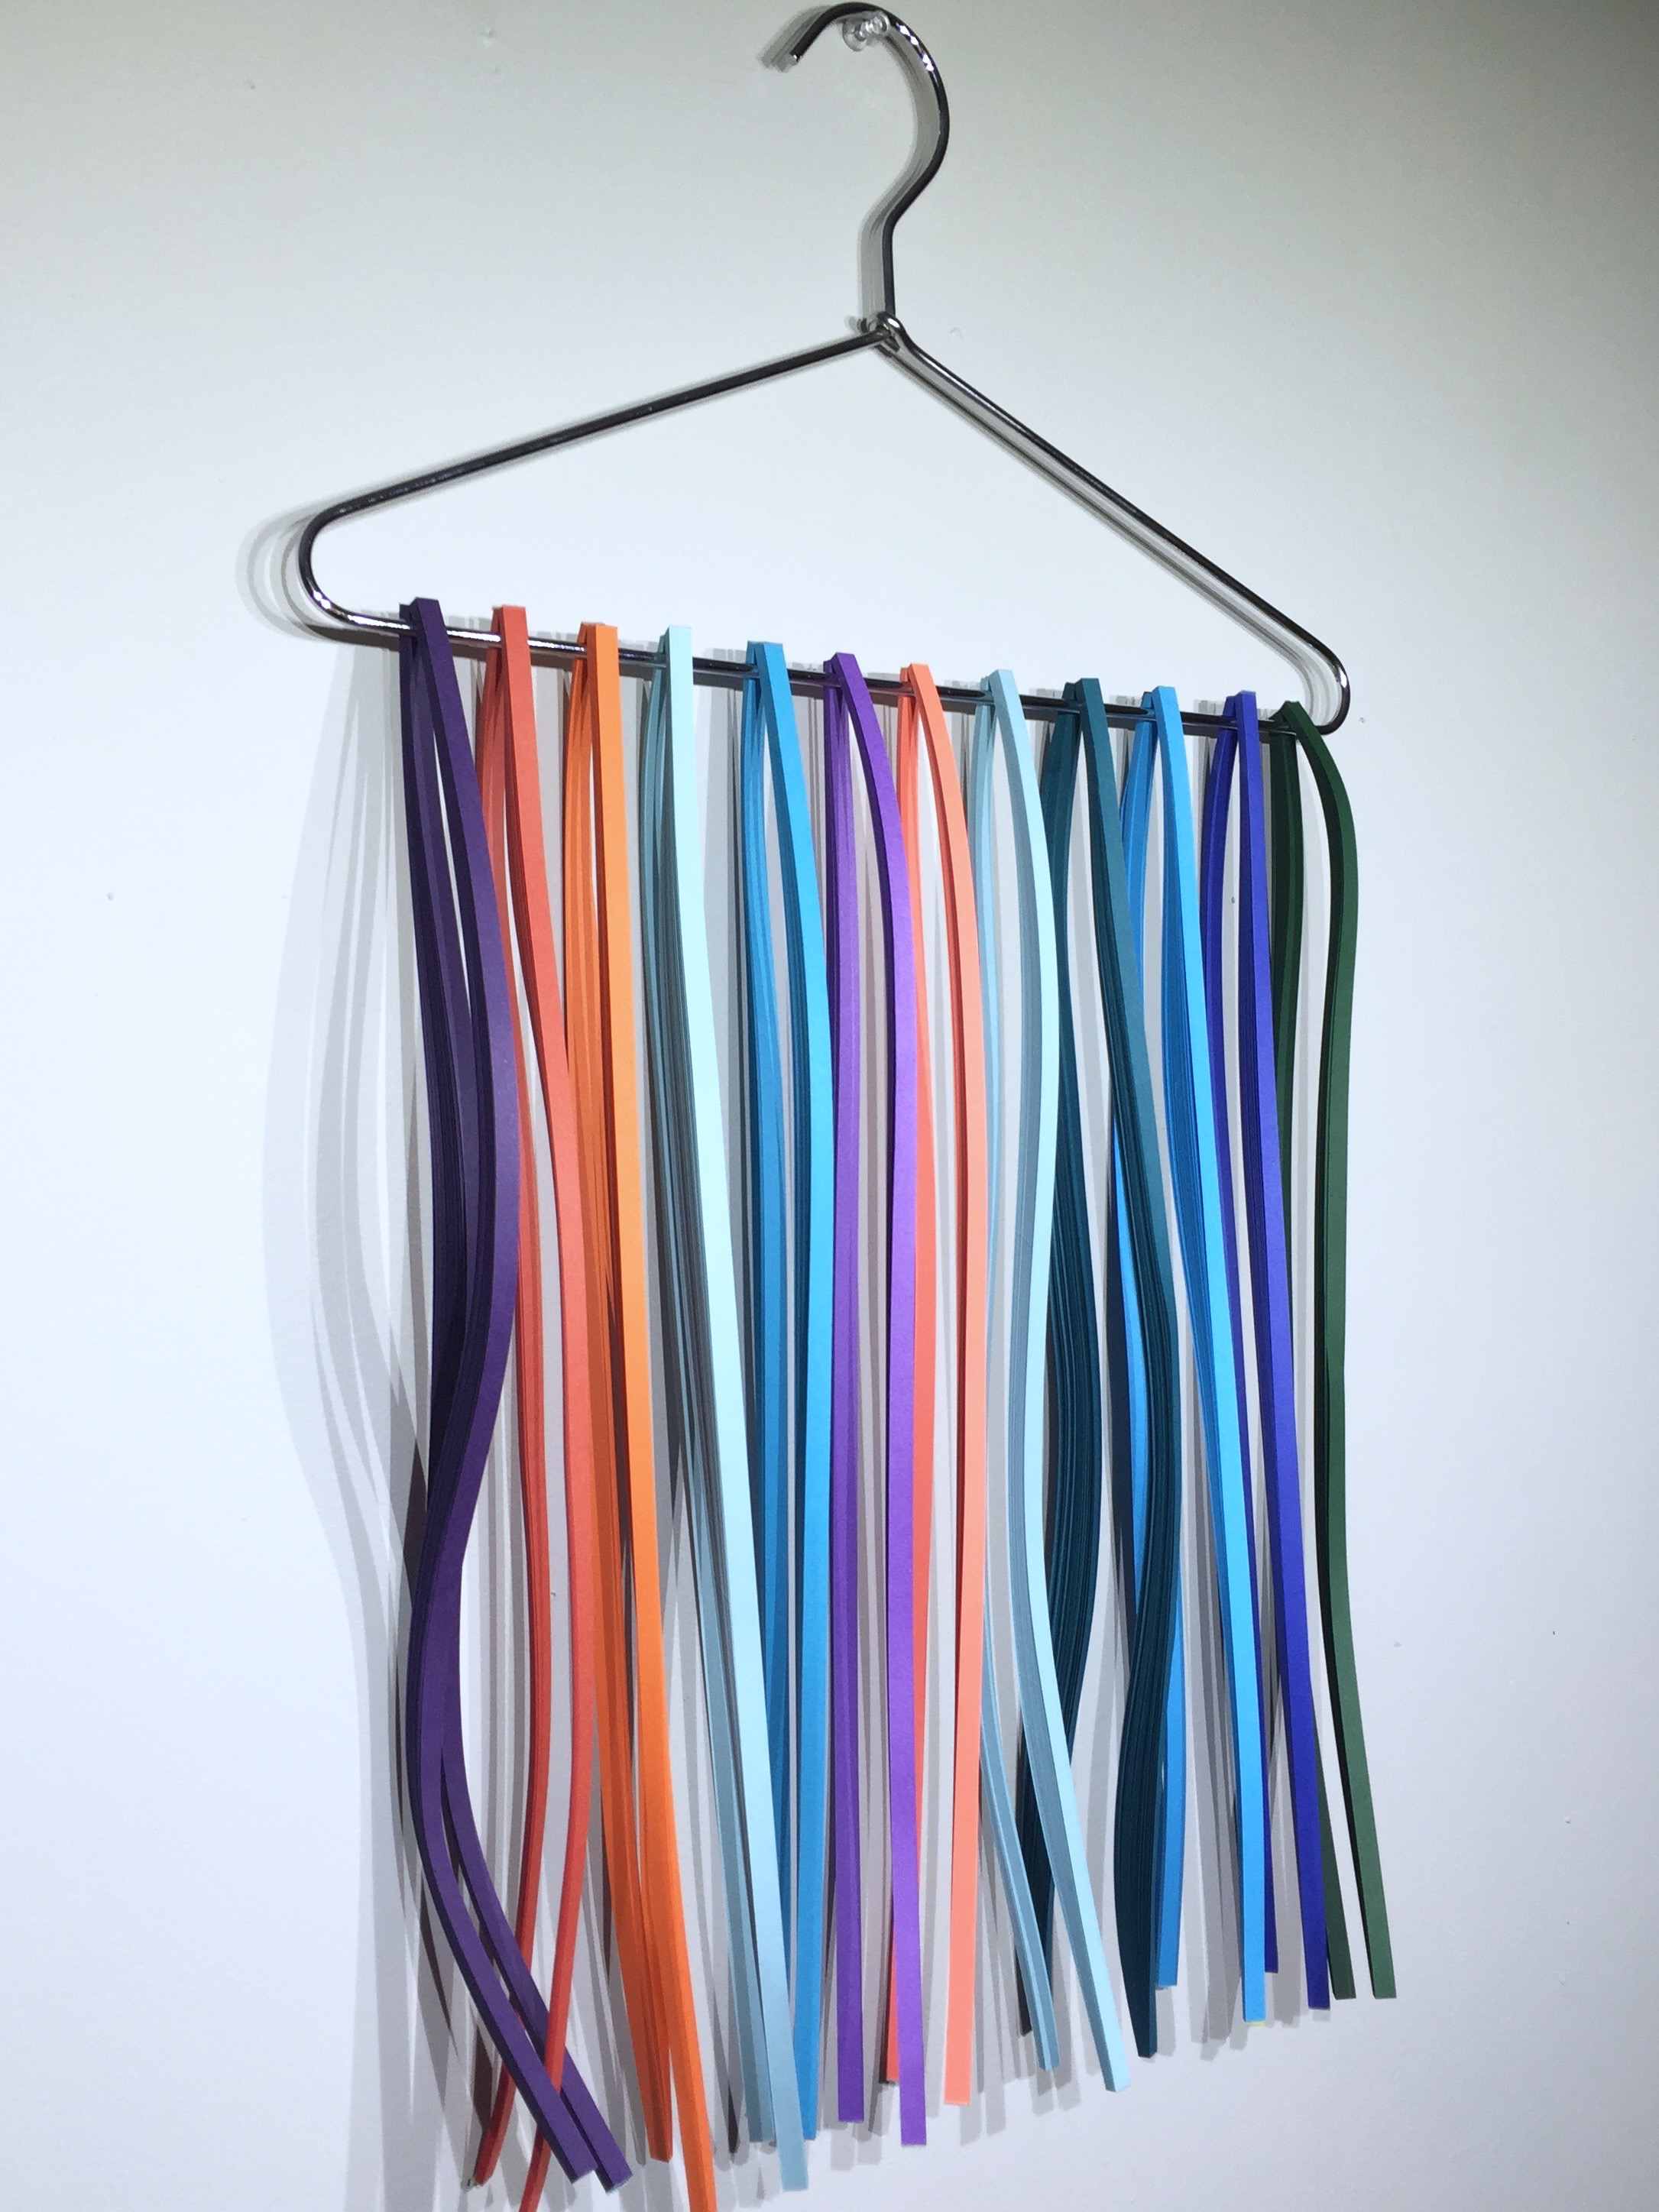 Image of storing quilling paper on a hanger